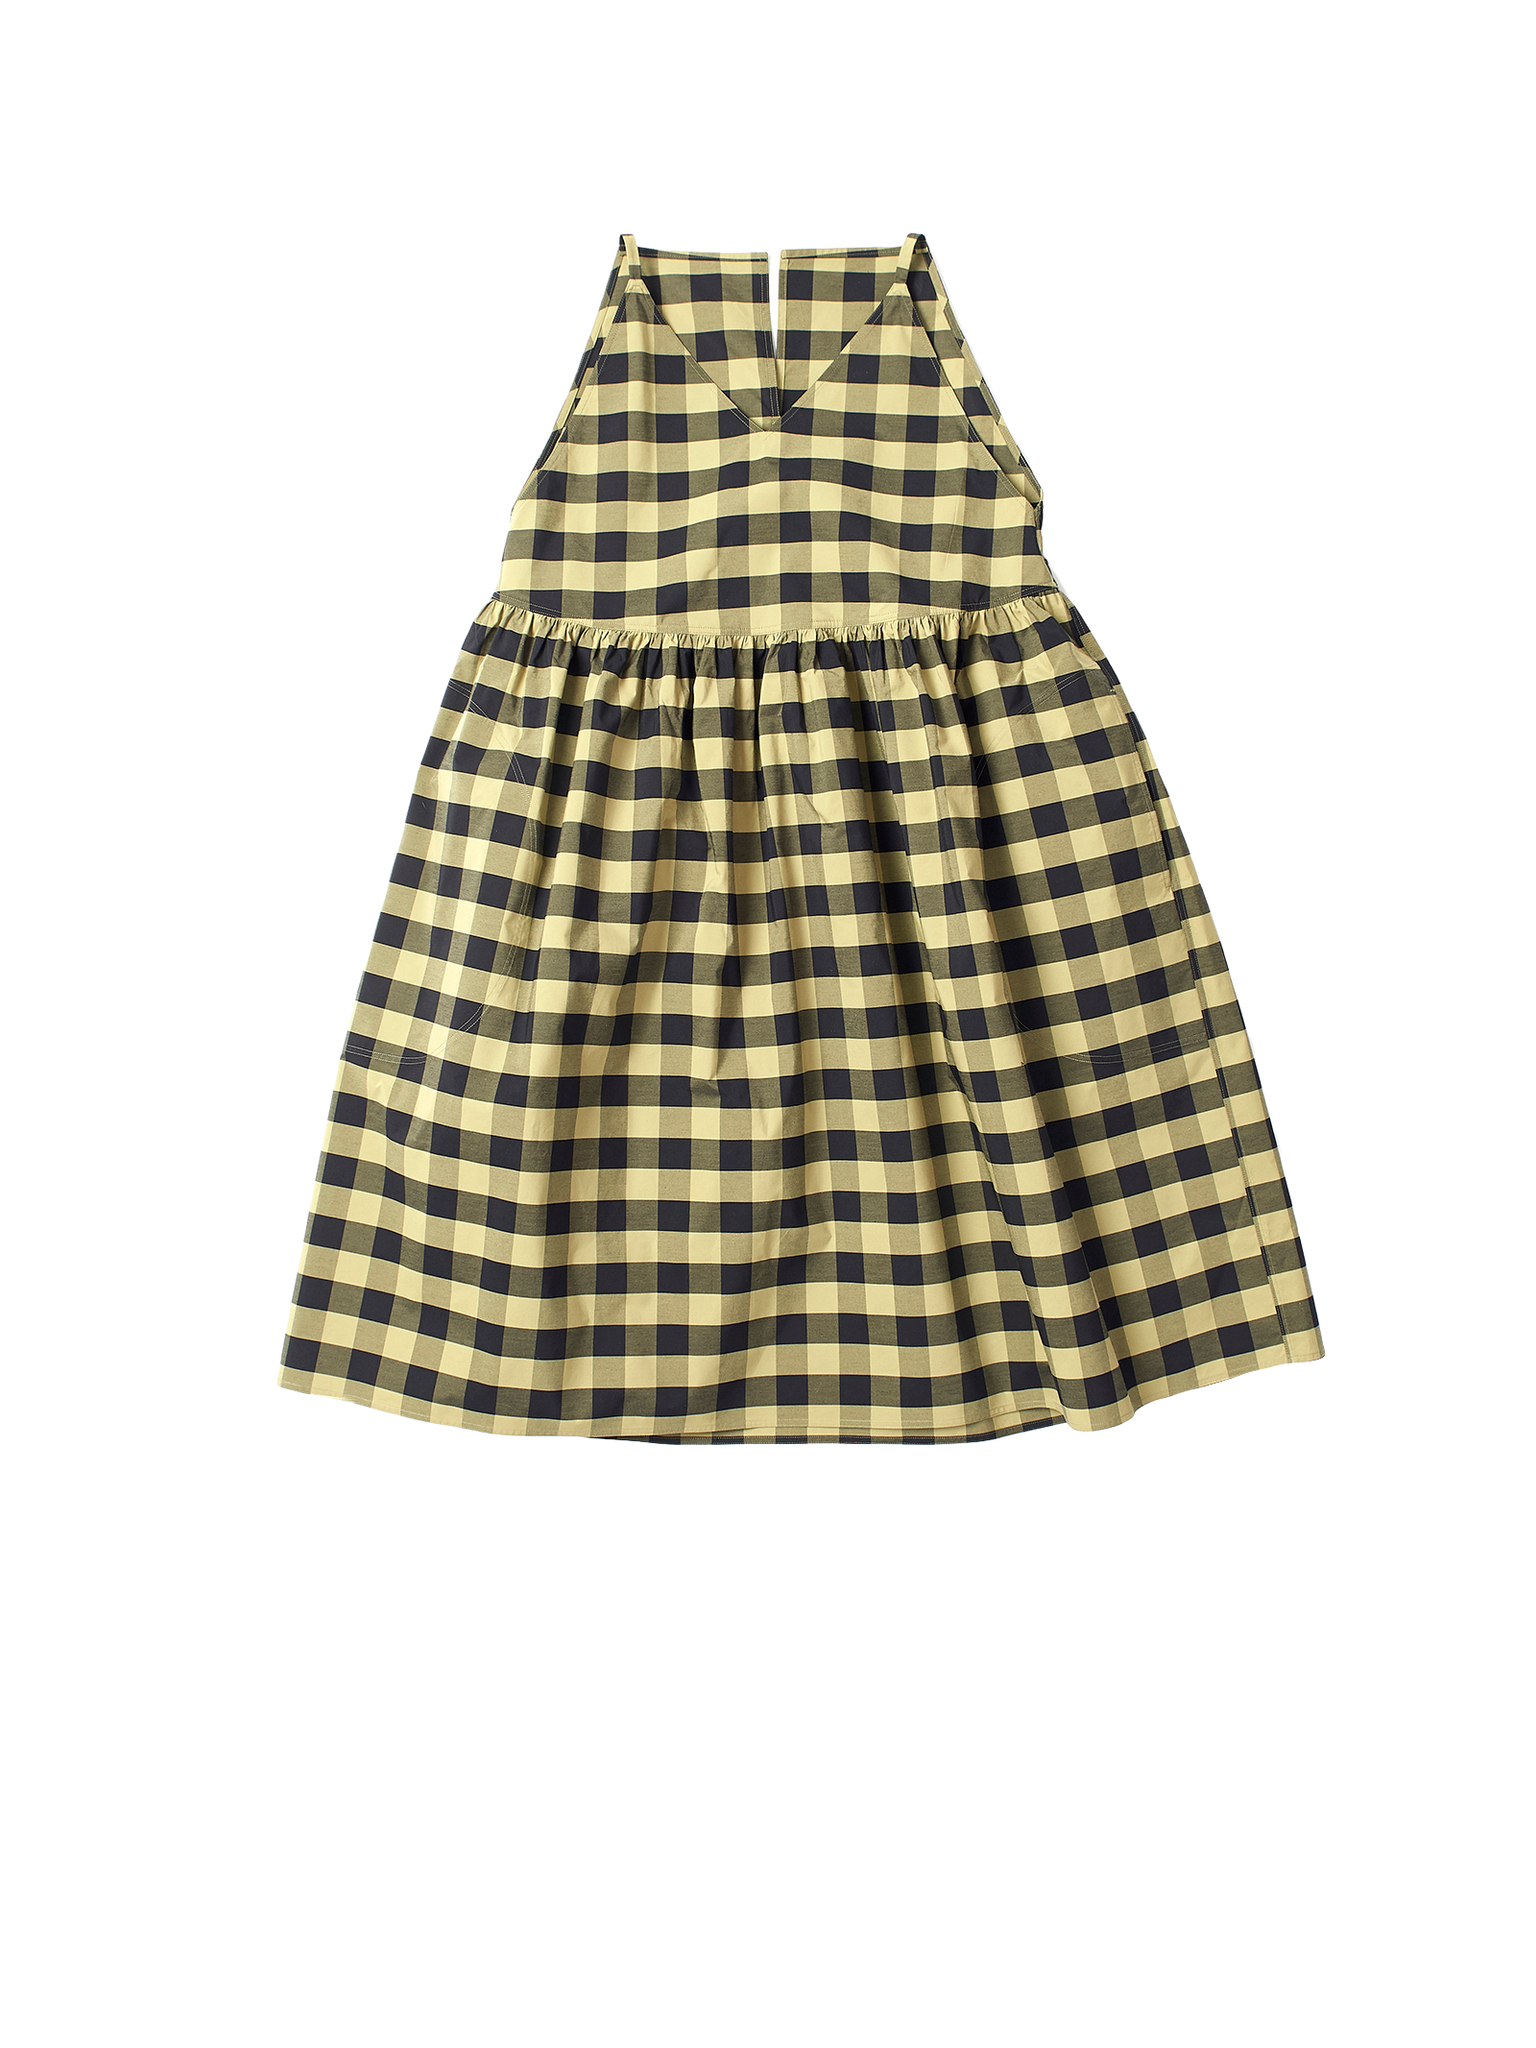 green check dress